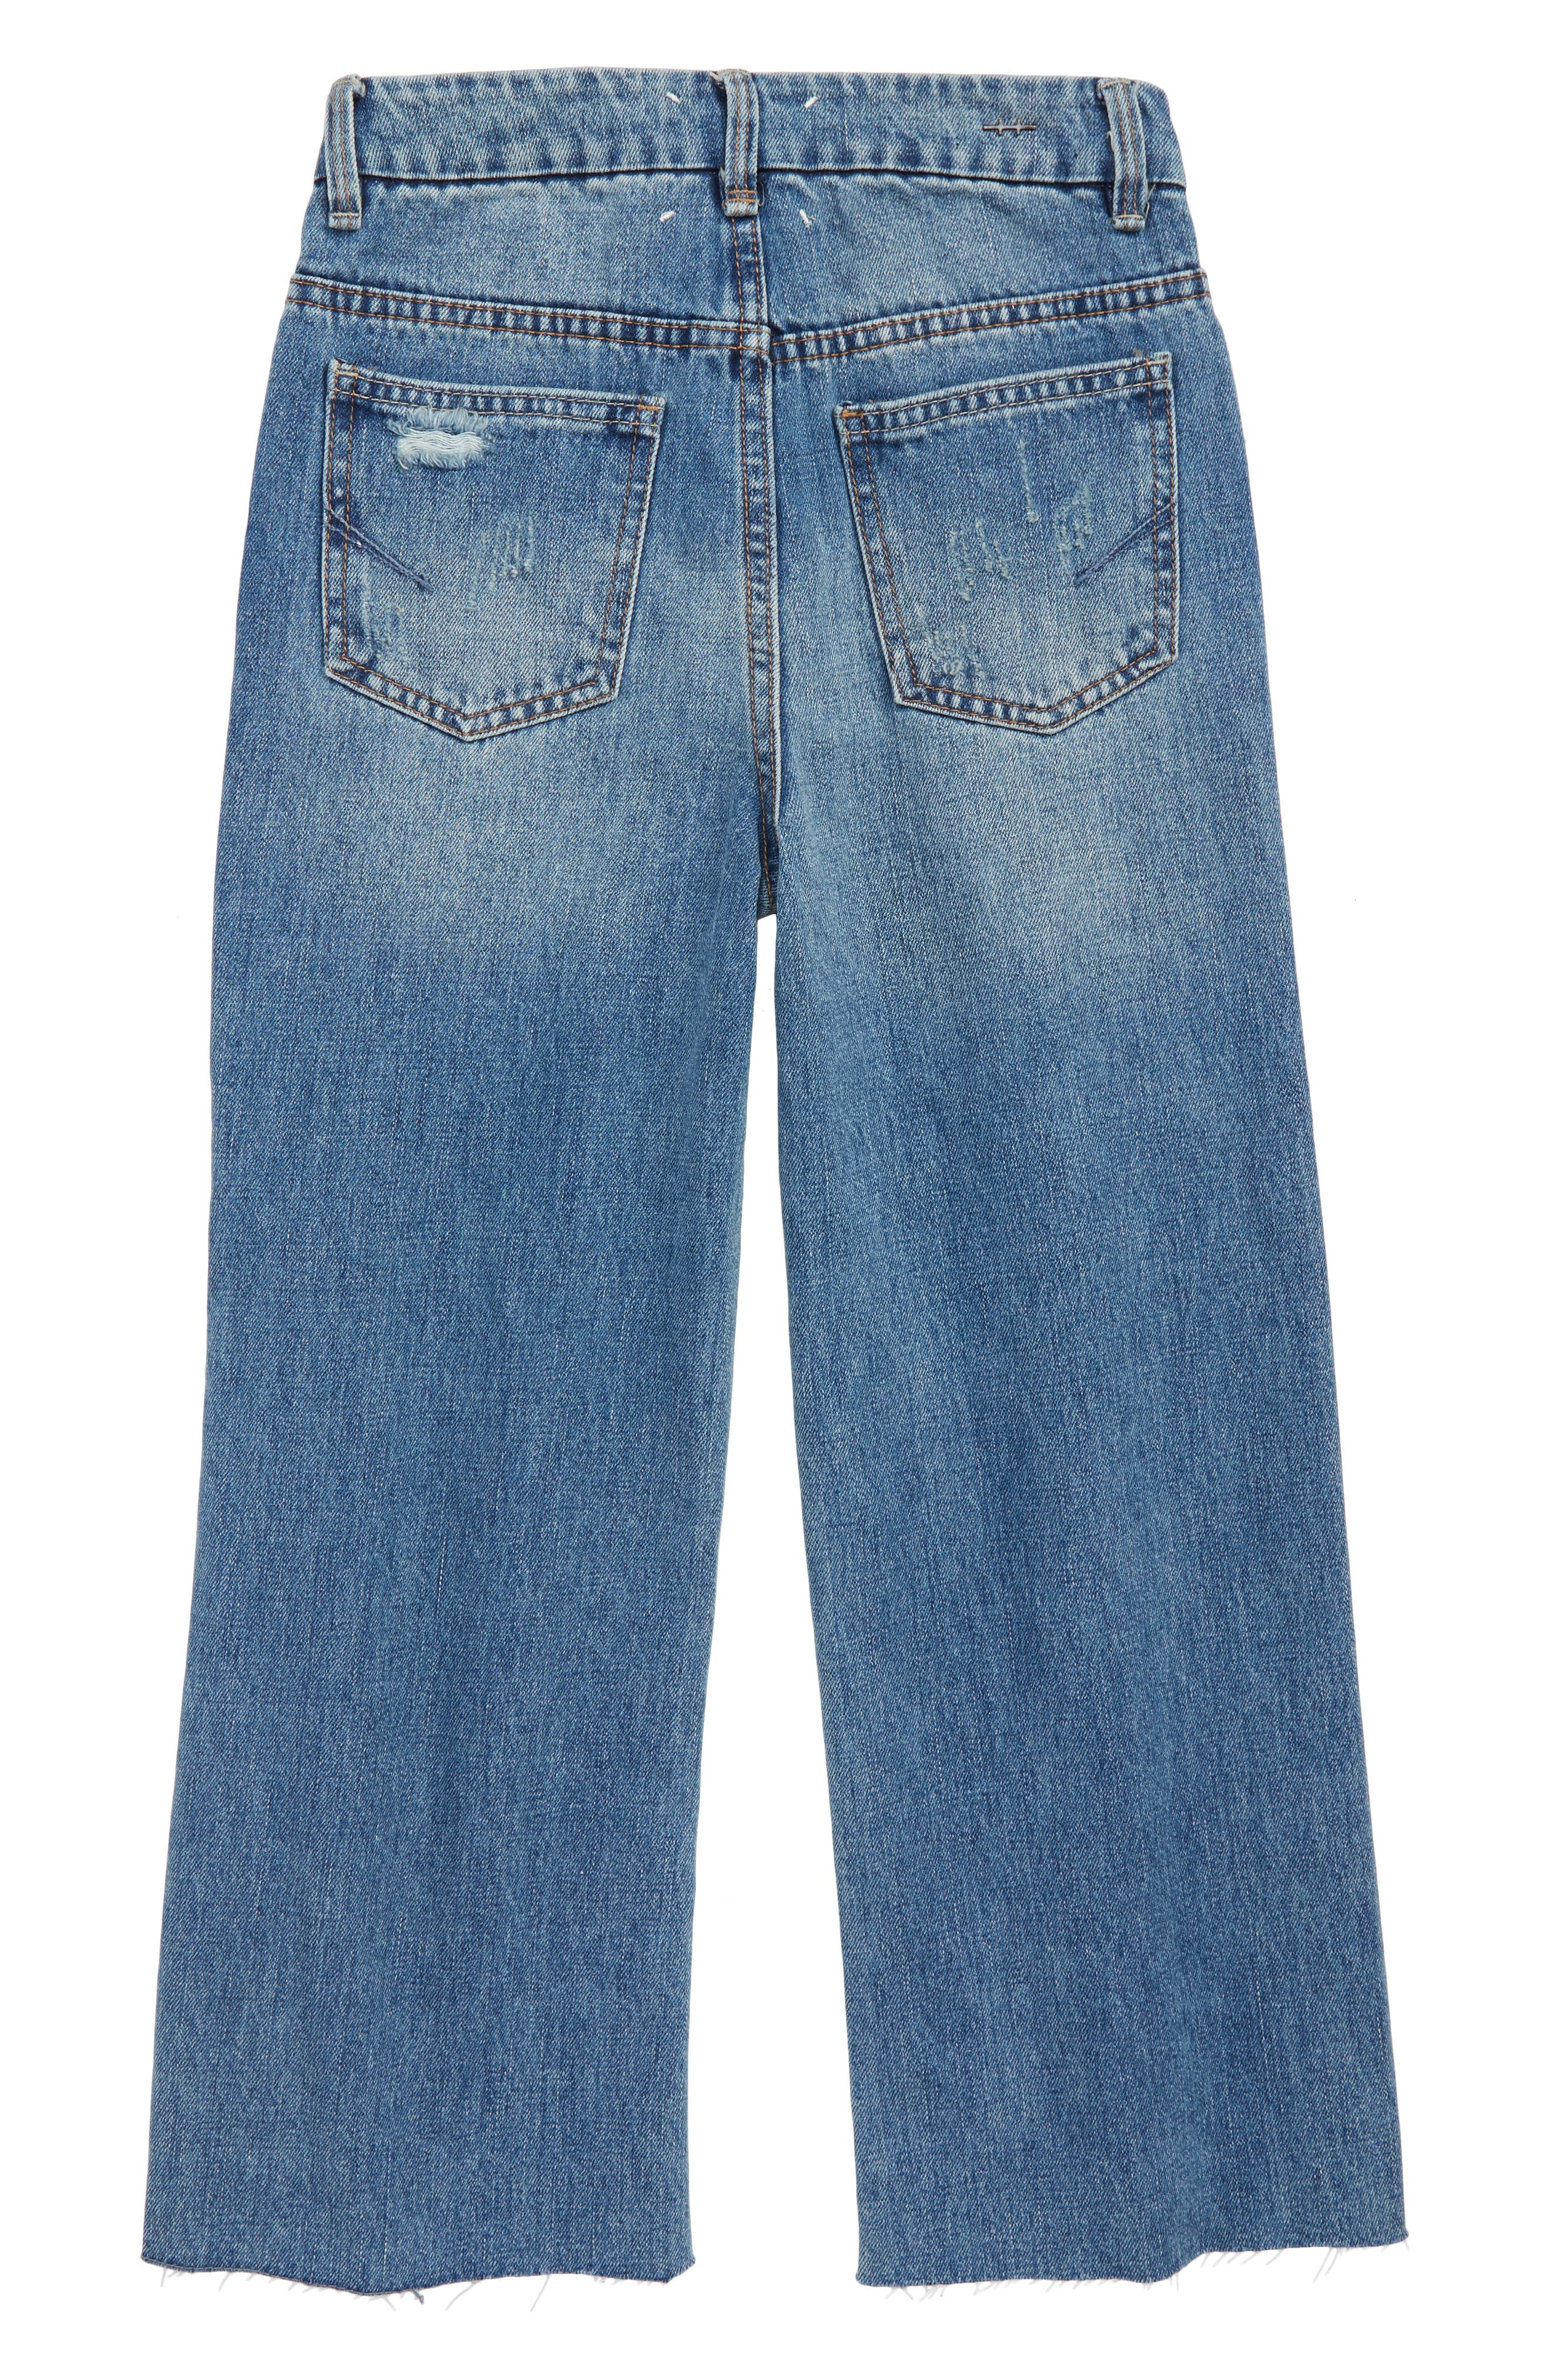 High Rise Wide Leg Crop Jeans,                             Alternate thumbnail 2, color,                             MED STONE